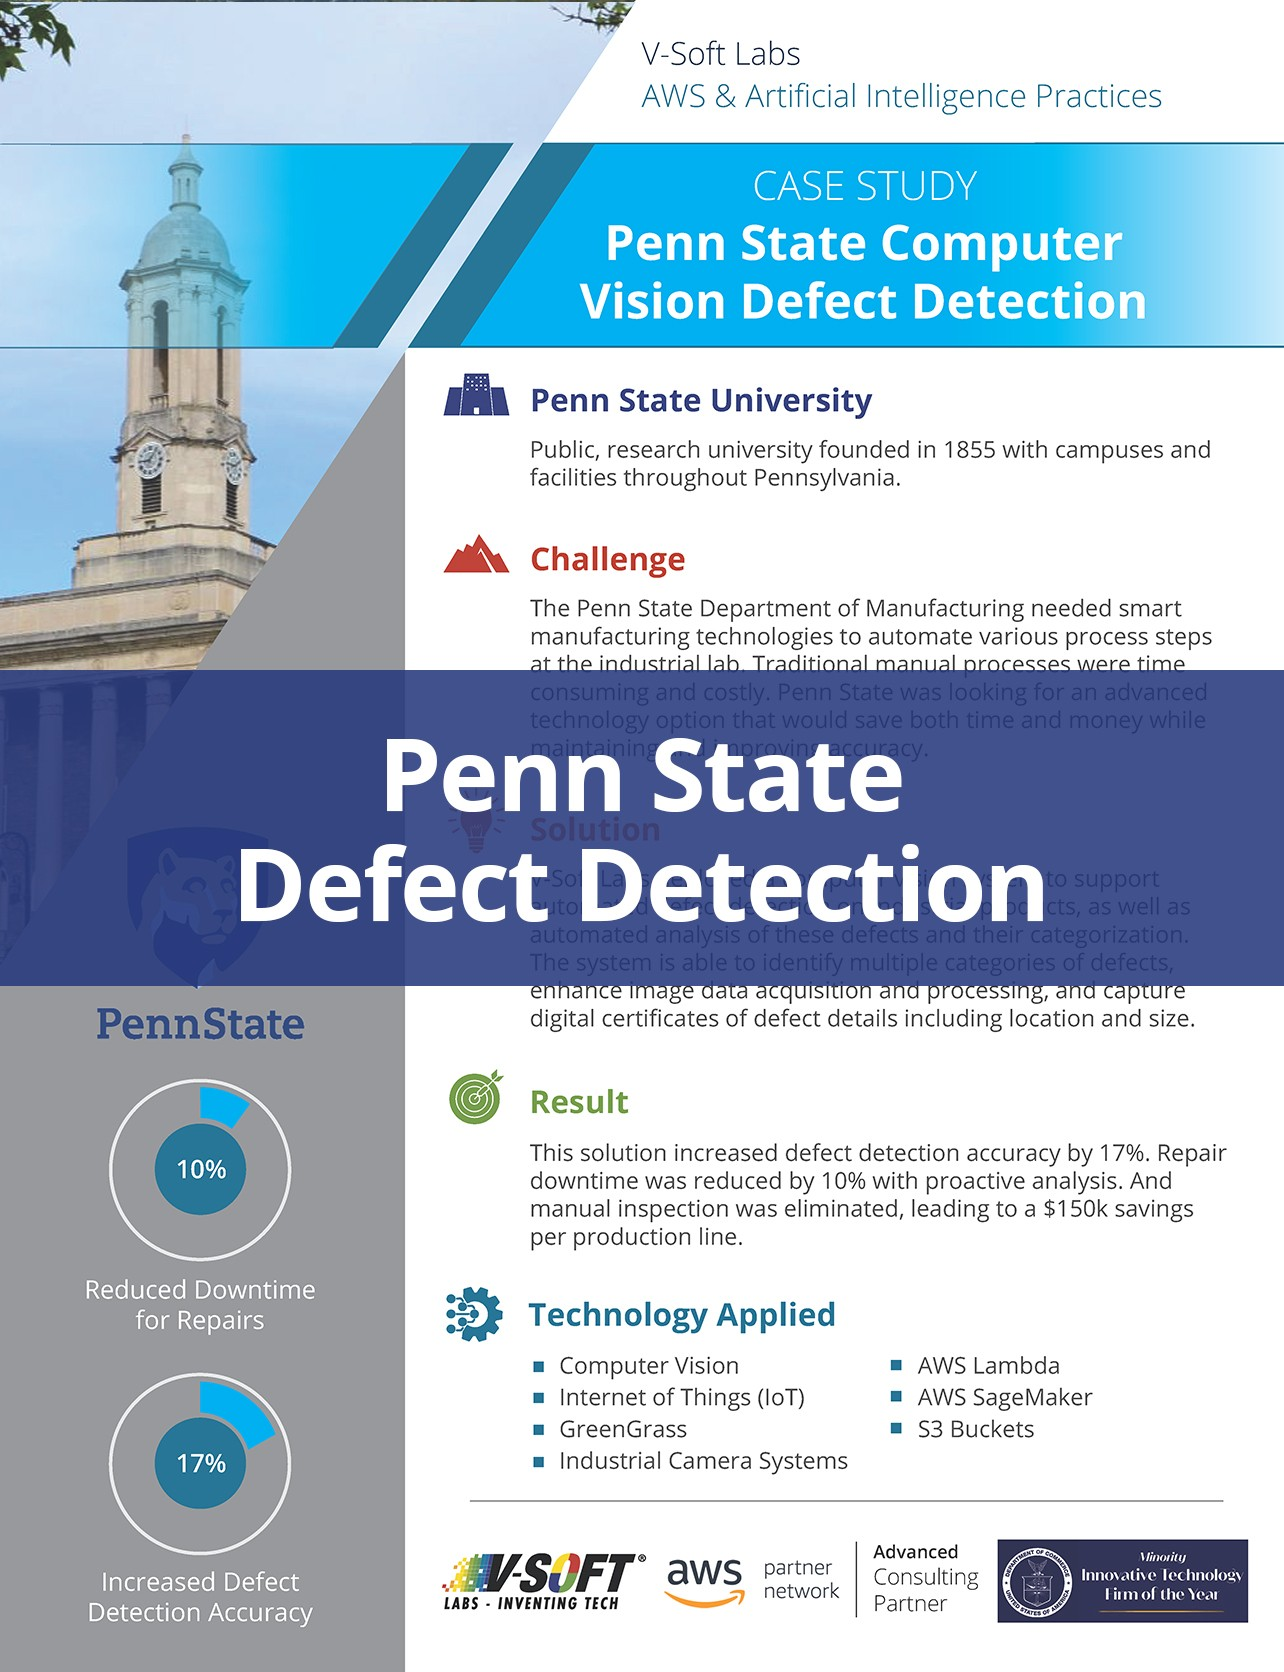 Penn State Defect Detection